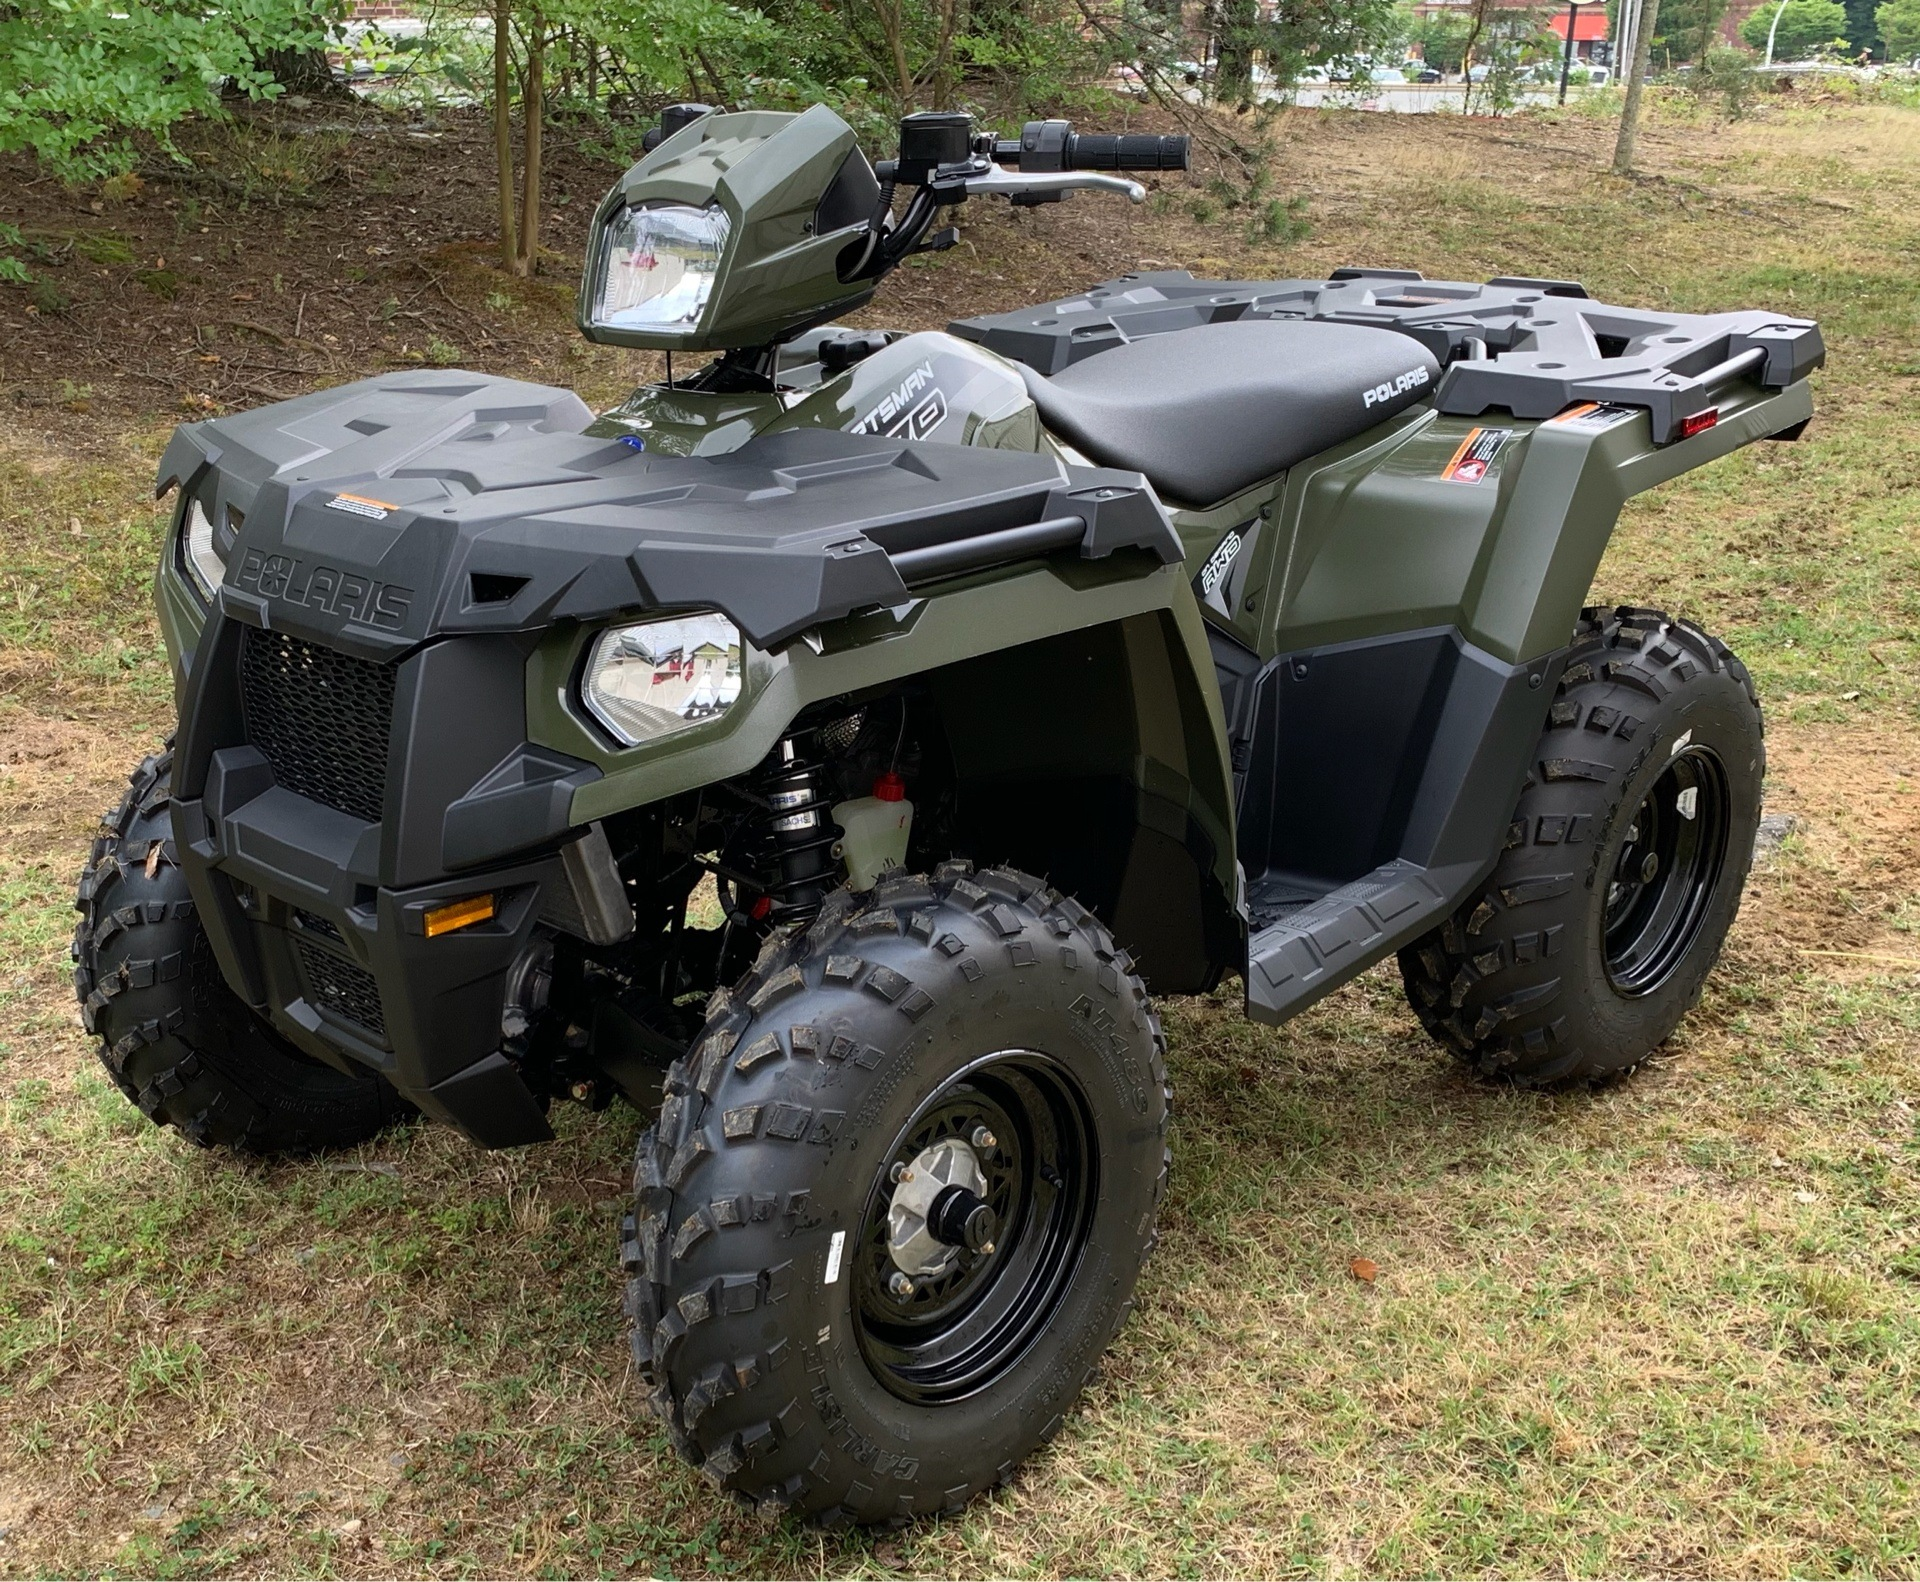 2019 Polaris Sportsman 570 in High Point, North Carolina - Photo 1